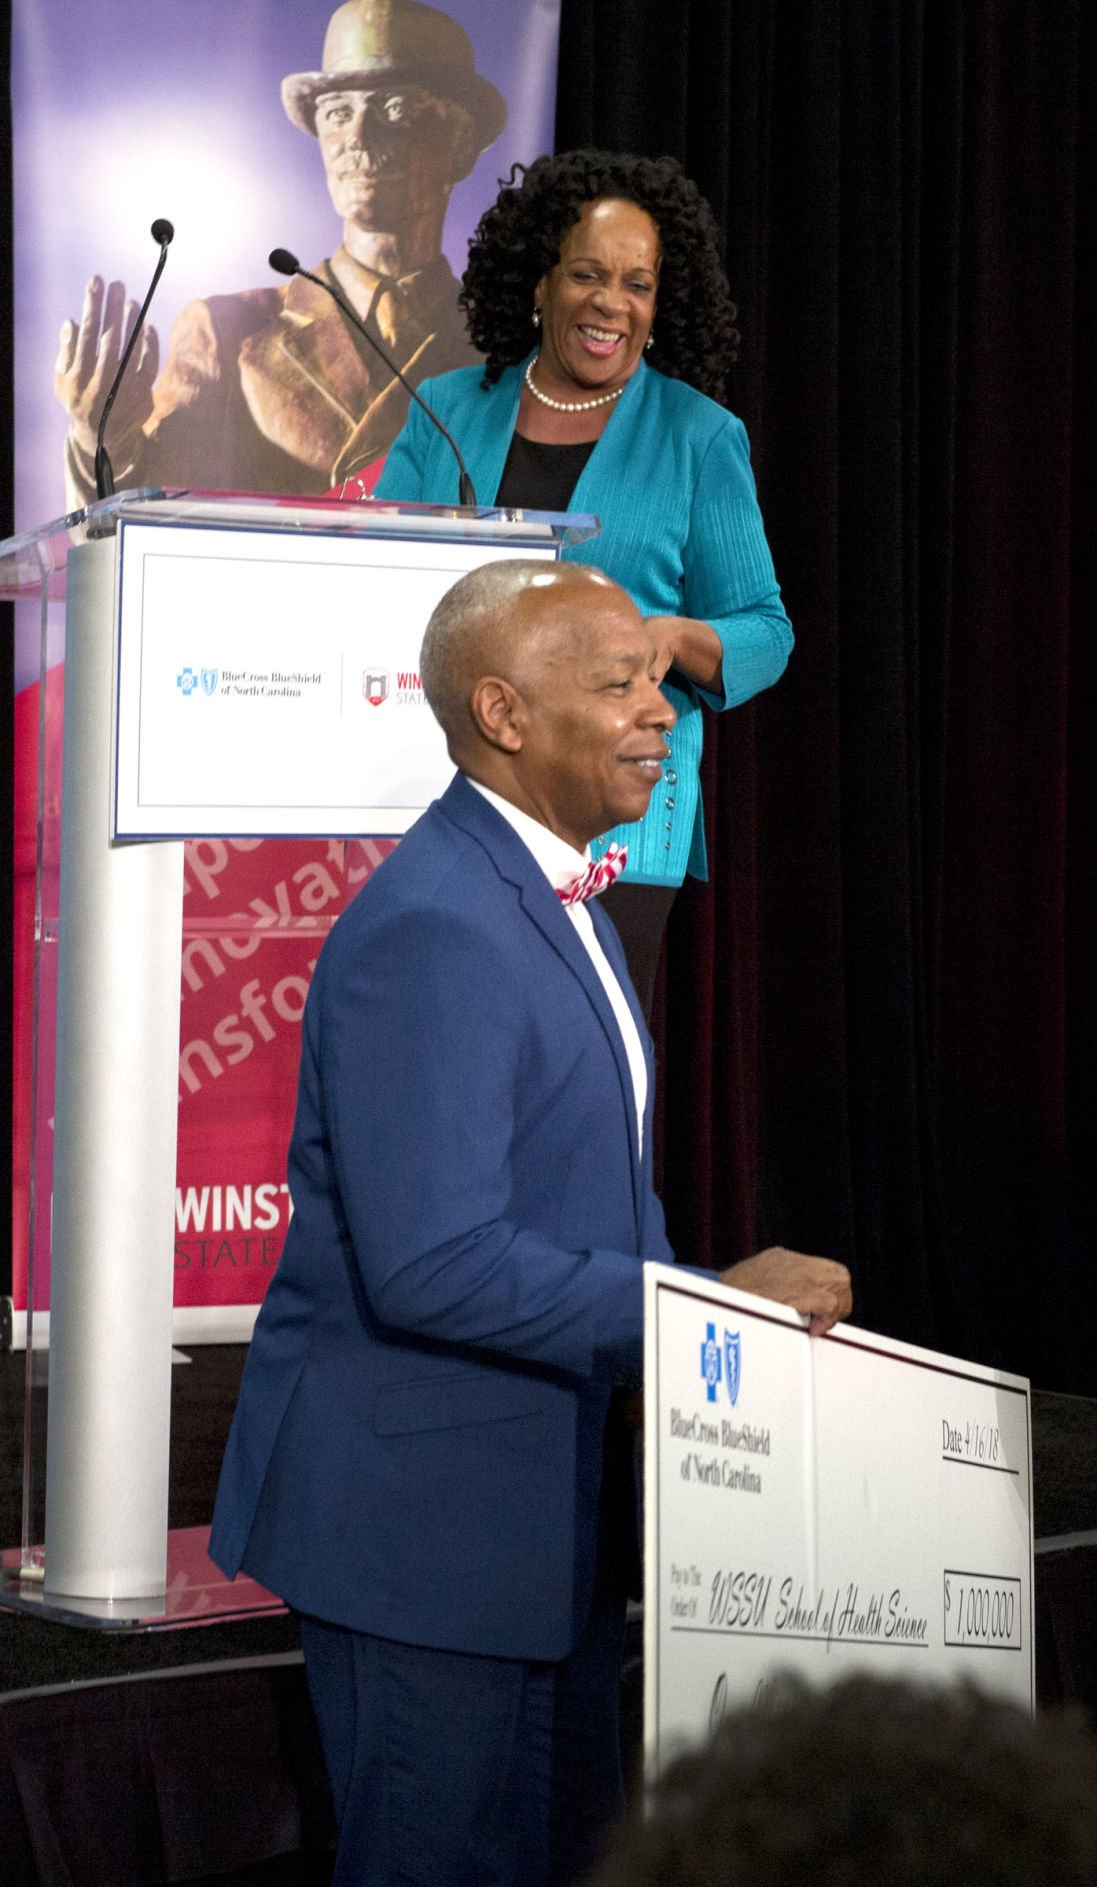 Blue Cross N.C. makes $1 million donation to WSSU's nursing program | Winston Salem Journal